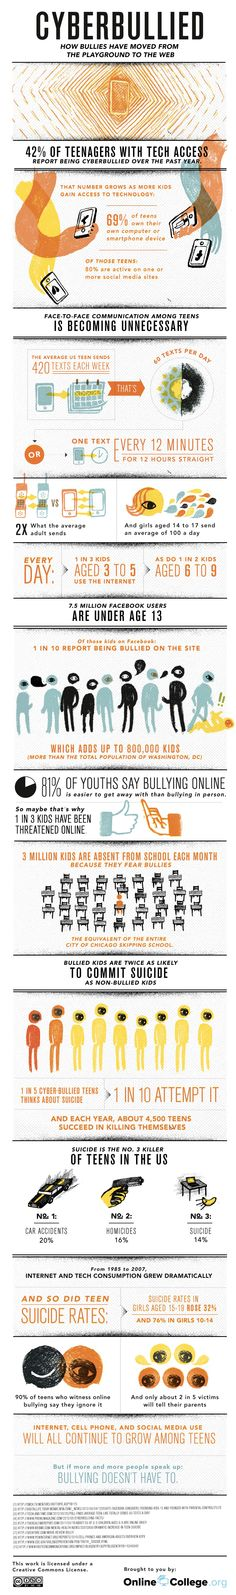 Cyberbullying: Don't Let Bullies Ruin Your Online Life